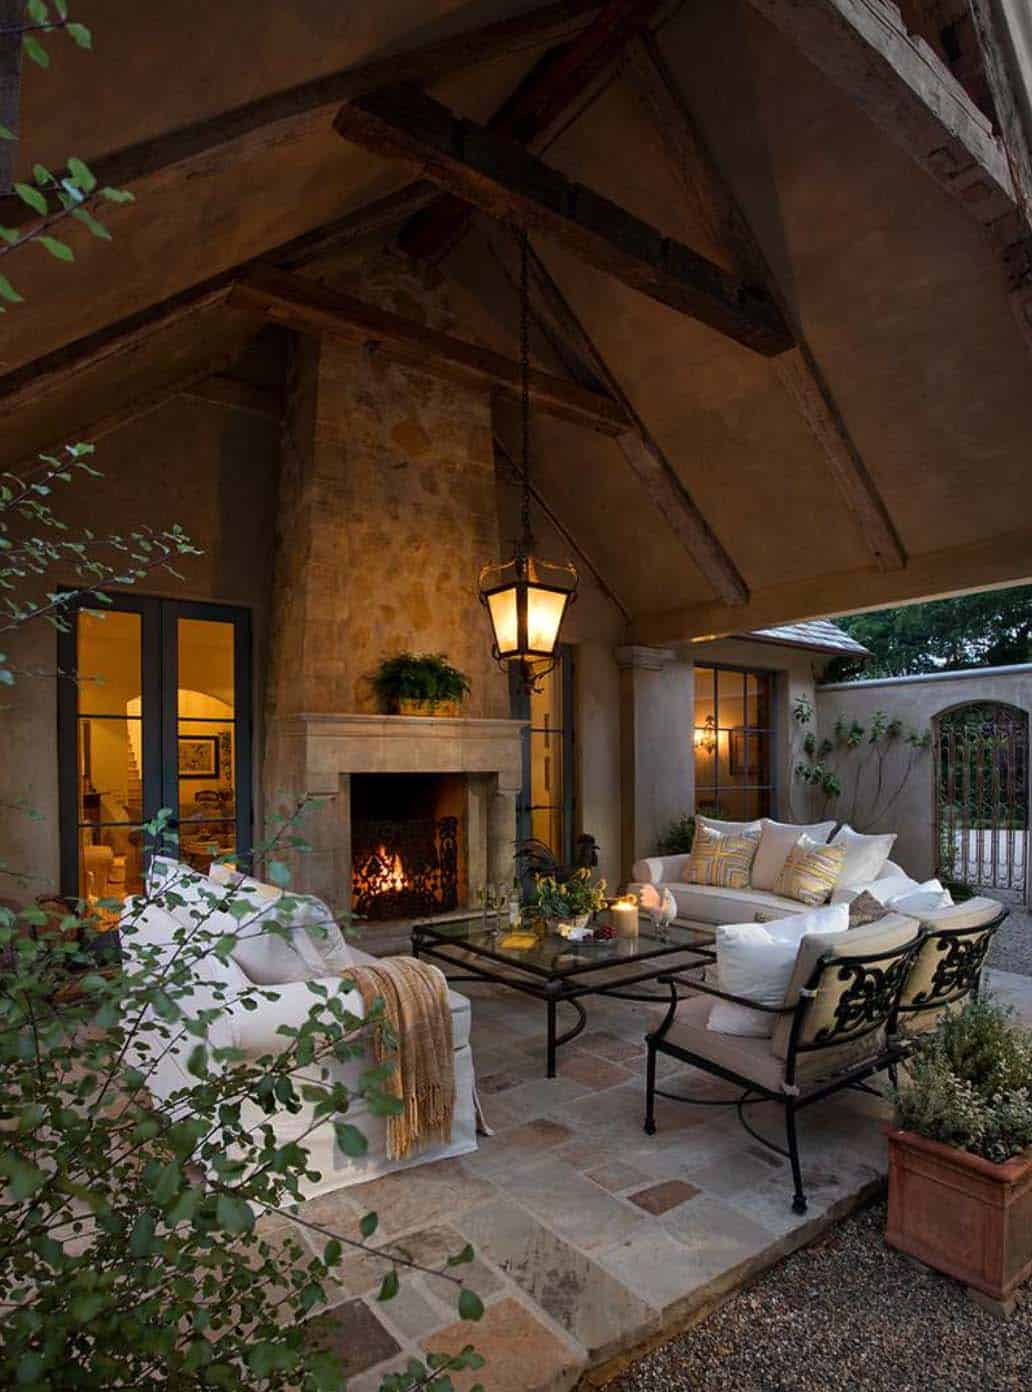 44 Traditional outdoor patio designs to capture your ... on Backyard Patio  id=35233